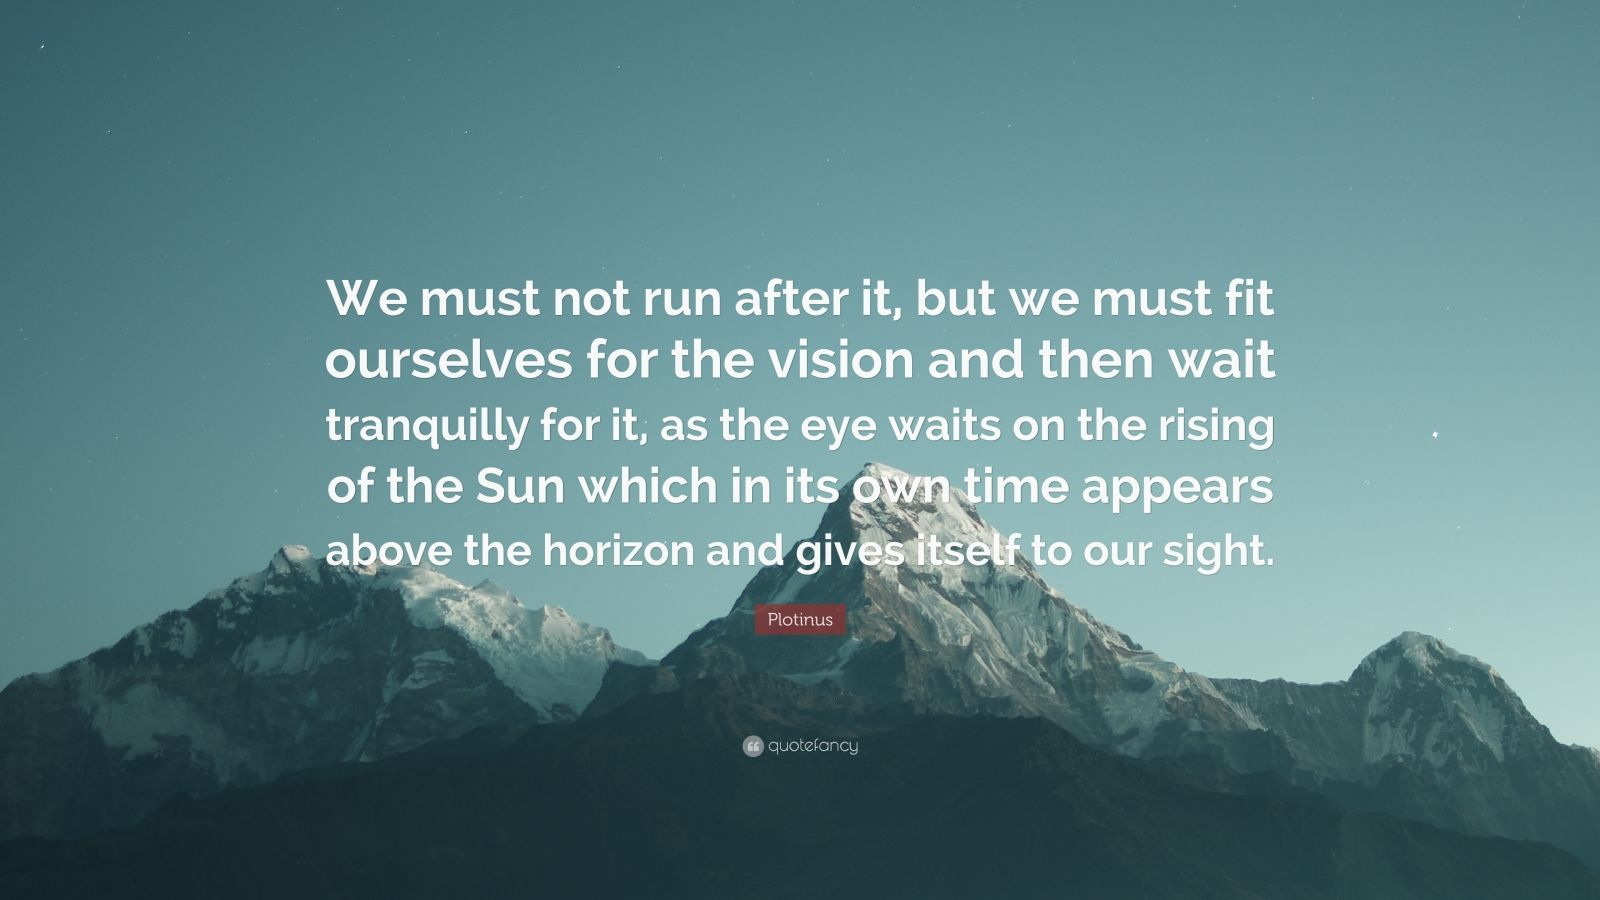 """Plotinus Quote: """"We must not run after it, but we must fit ourselves for the vision and then wait tranquilly for it, as the eye waits on the rising of the Sun which in its own time appears above the horizon and gives itself to our sight."""""""